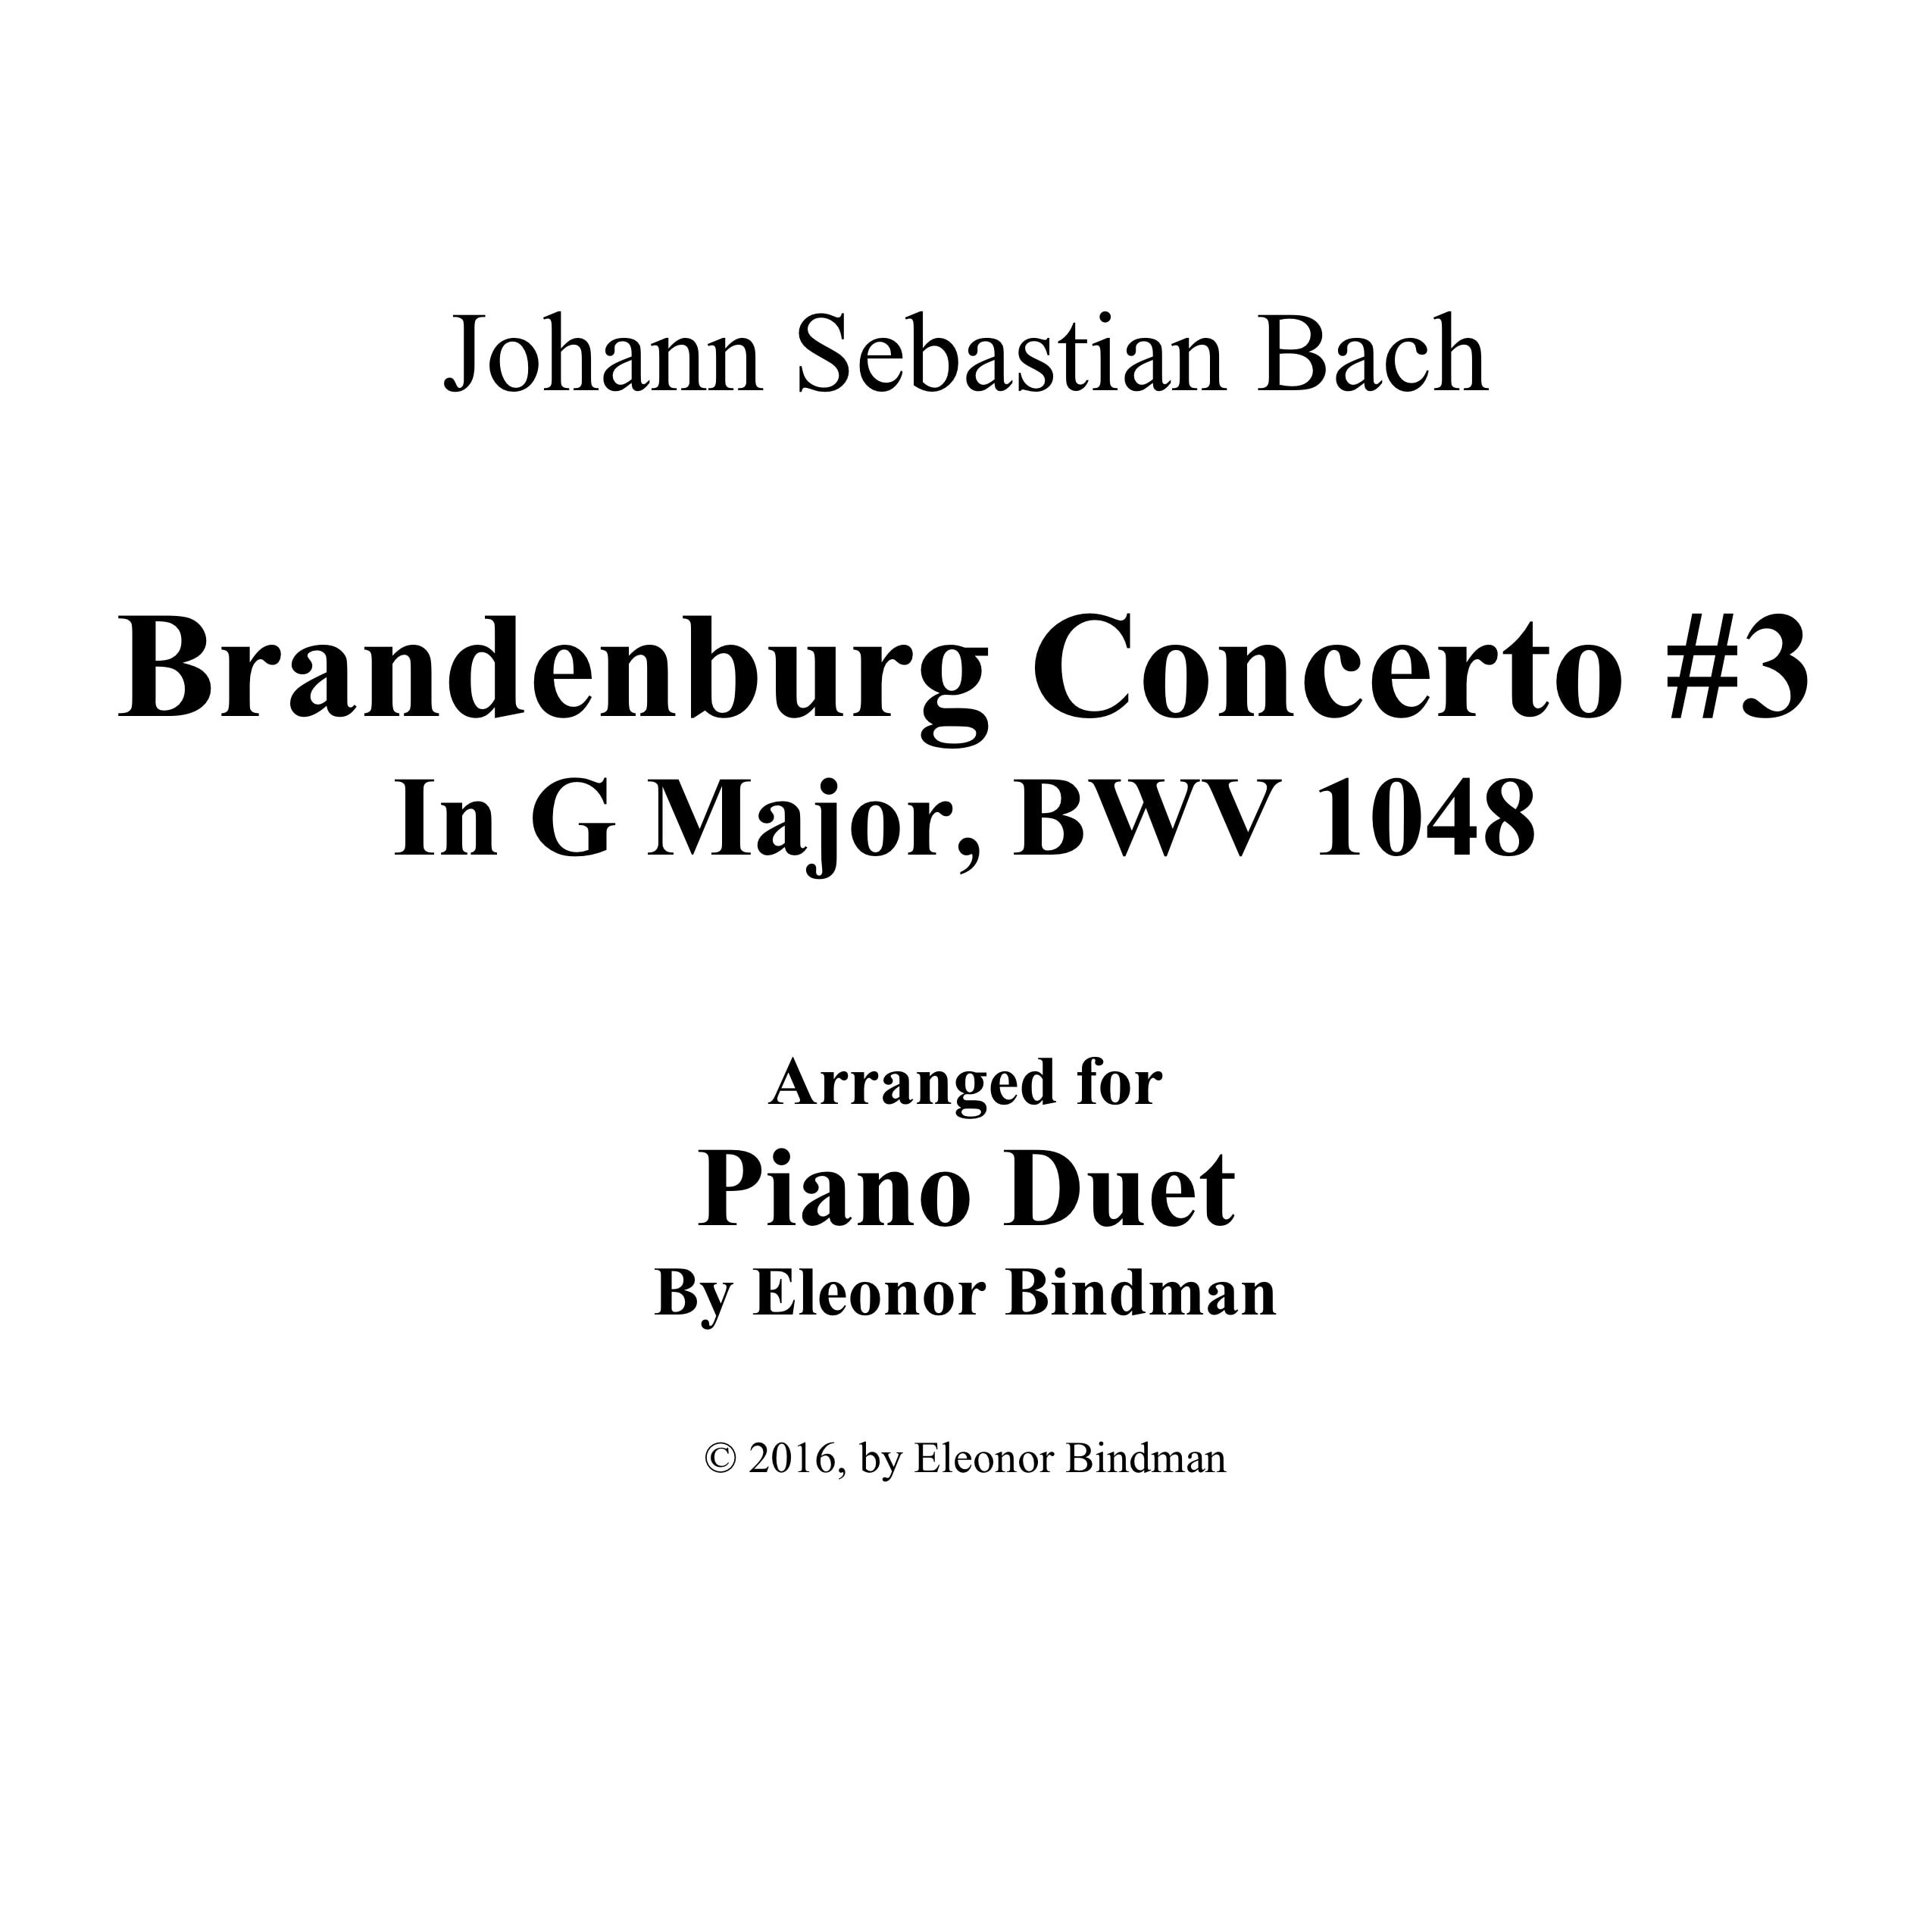 J.S. Bach: Brandenburg Concerto No. 3 in G Major, BWV 1048 for Piano Duet - Score